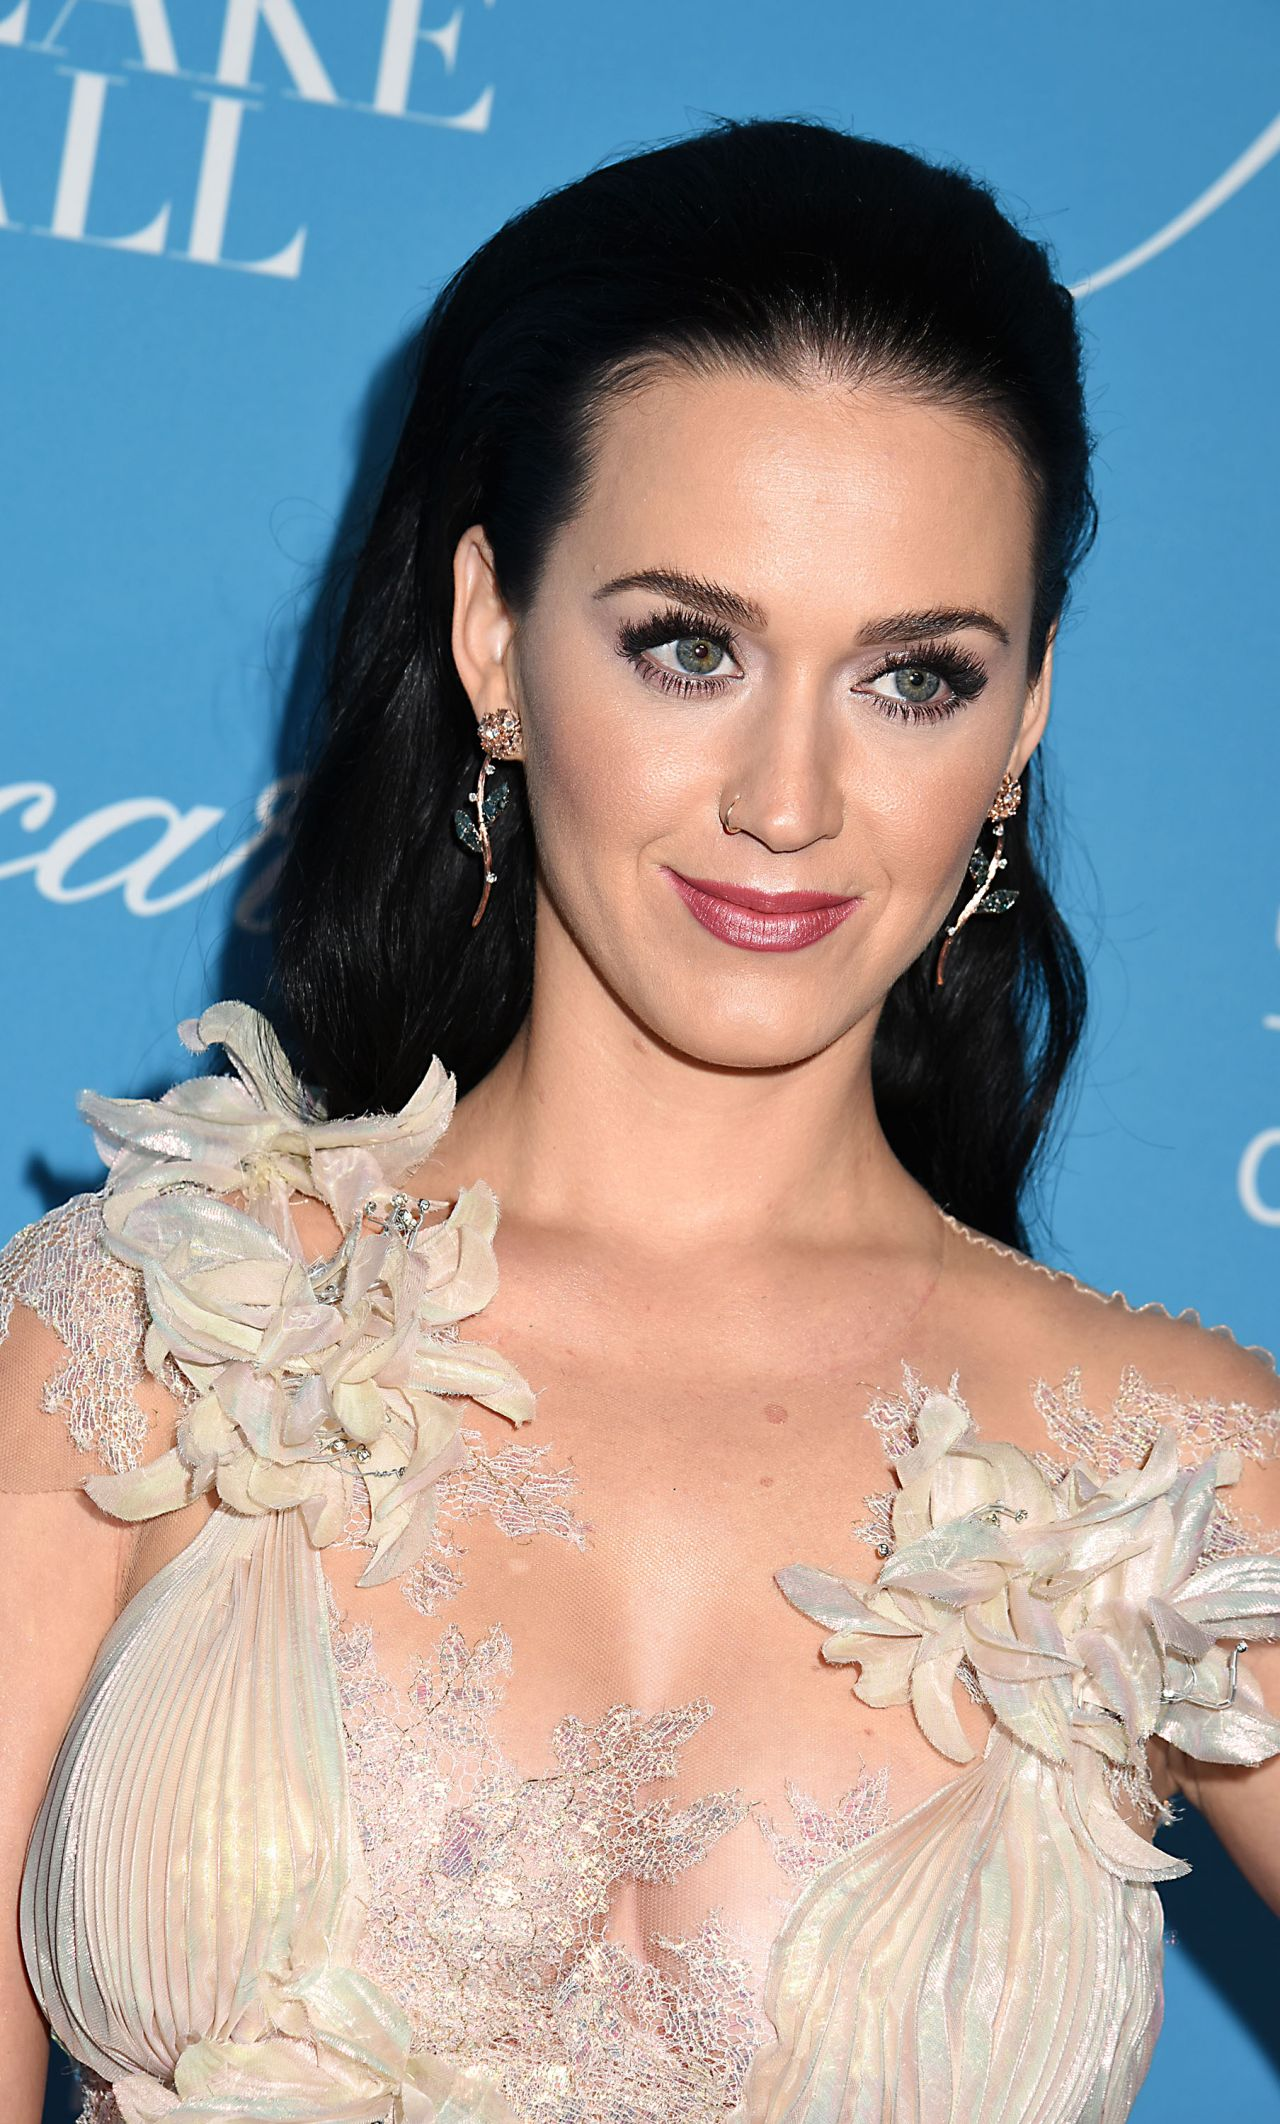 Katy Perry Unicef S Snowflake Ball In New York 11 29 2016